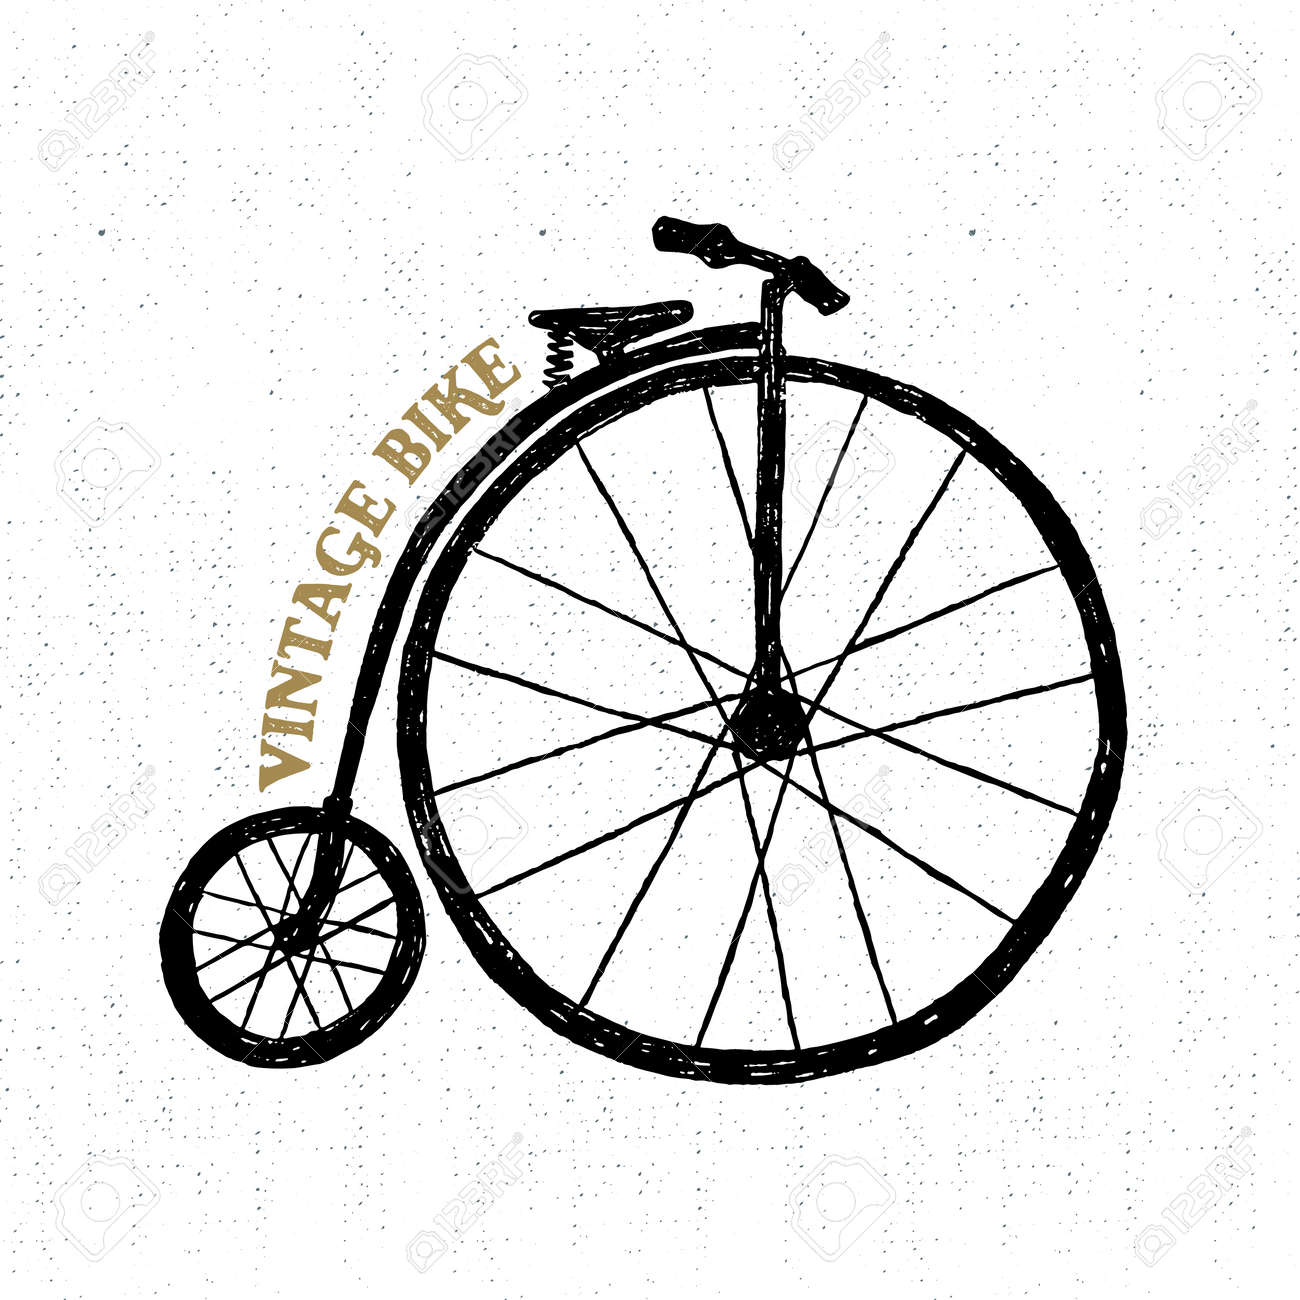 Hand drawn textured vintage icon with bicycle vector illustration. - 53286115